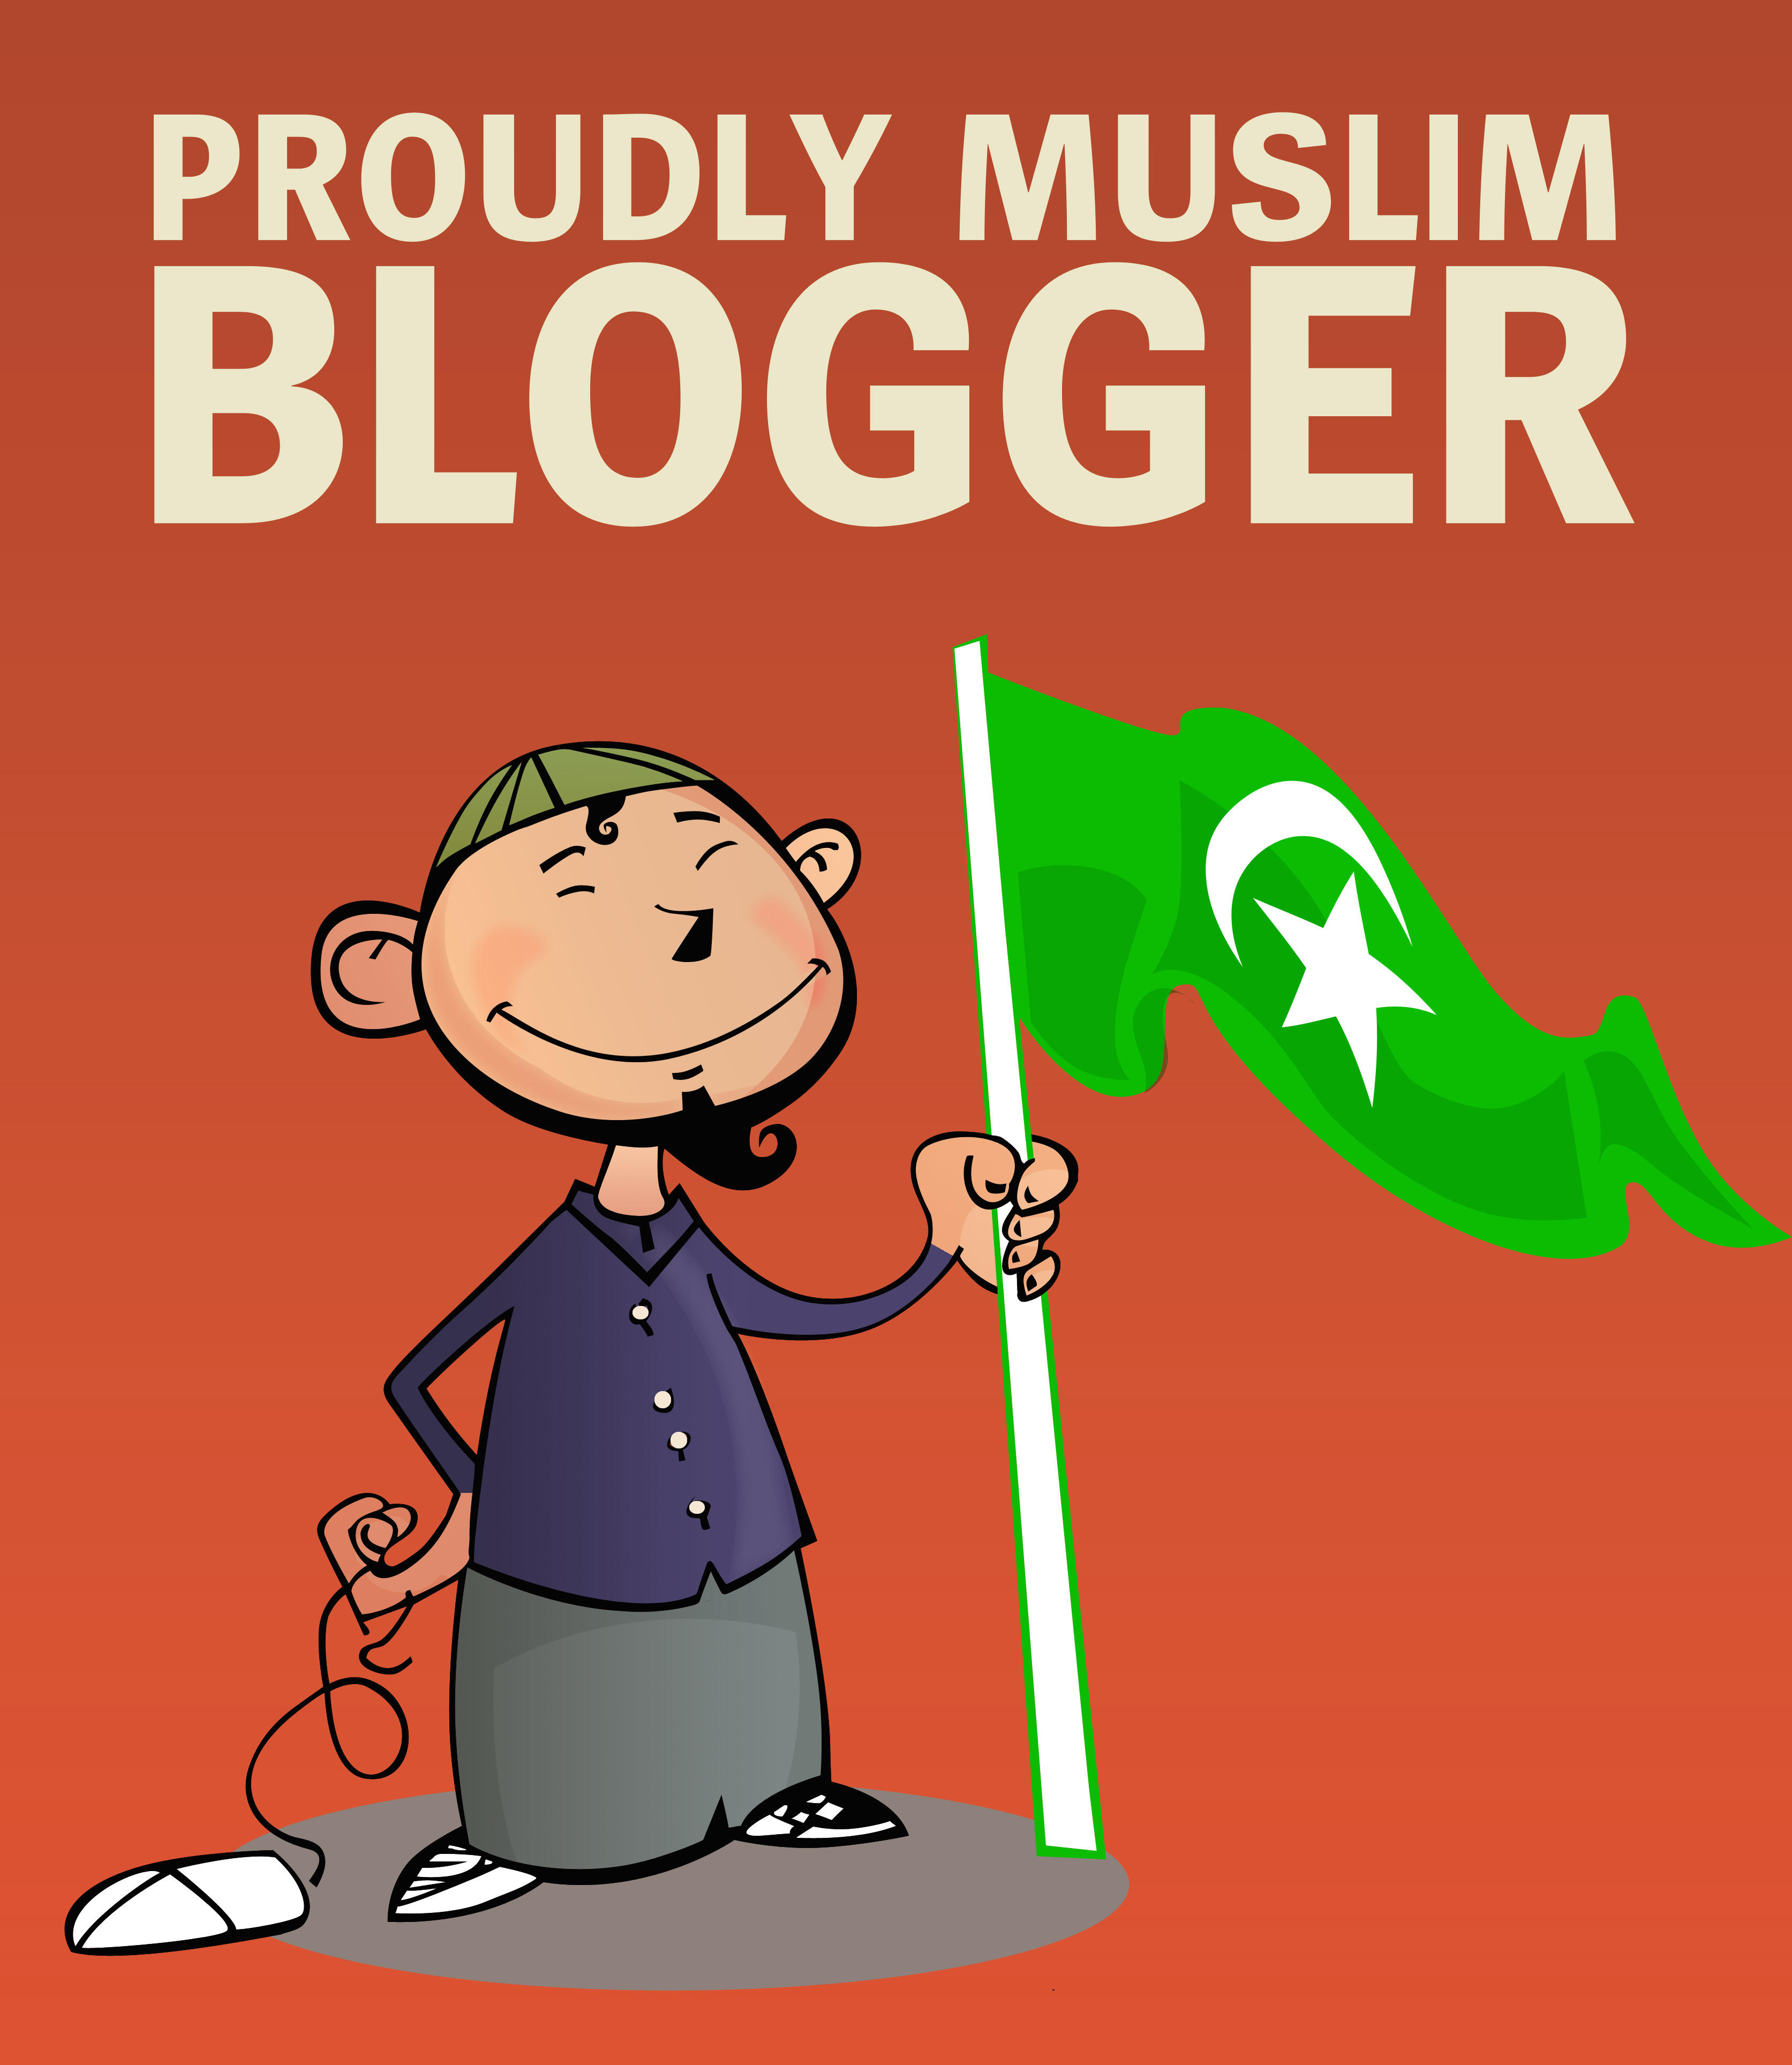 Proudly Muslim Blogger v3 by ademmm